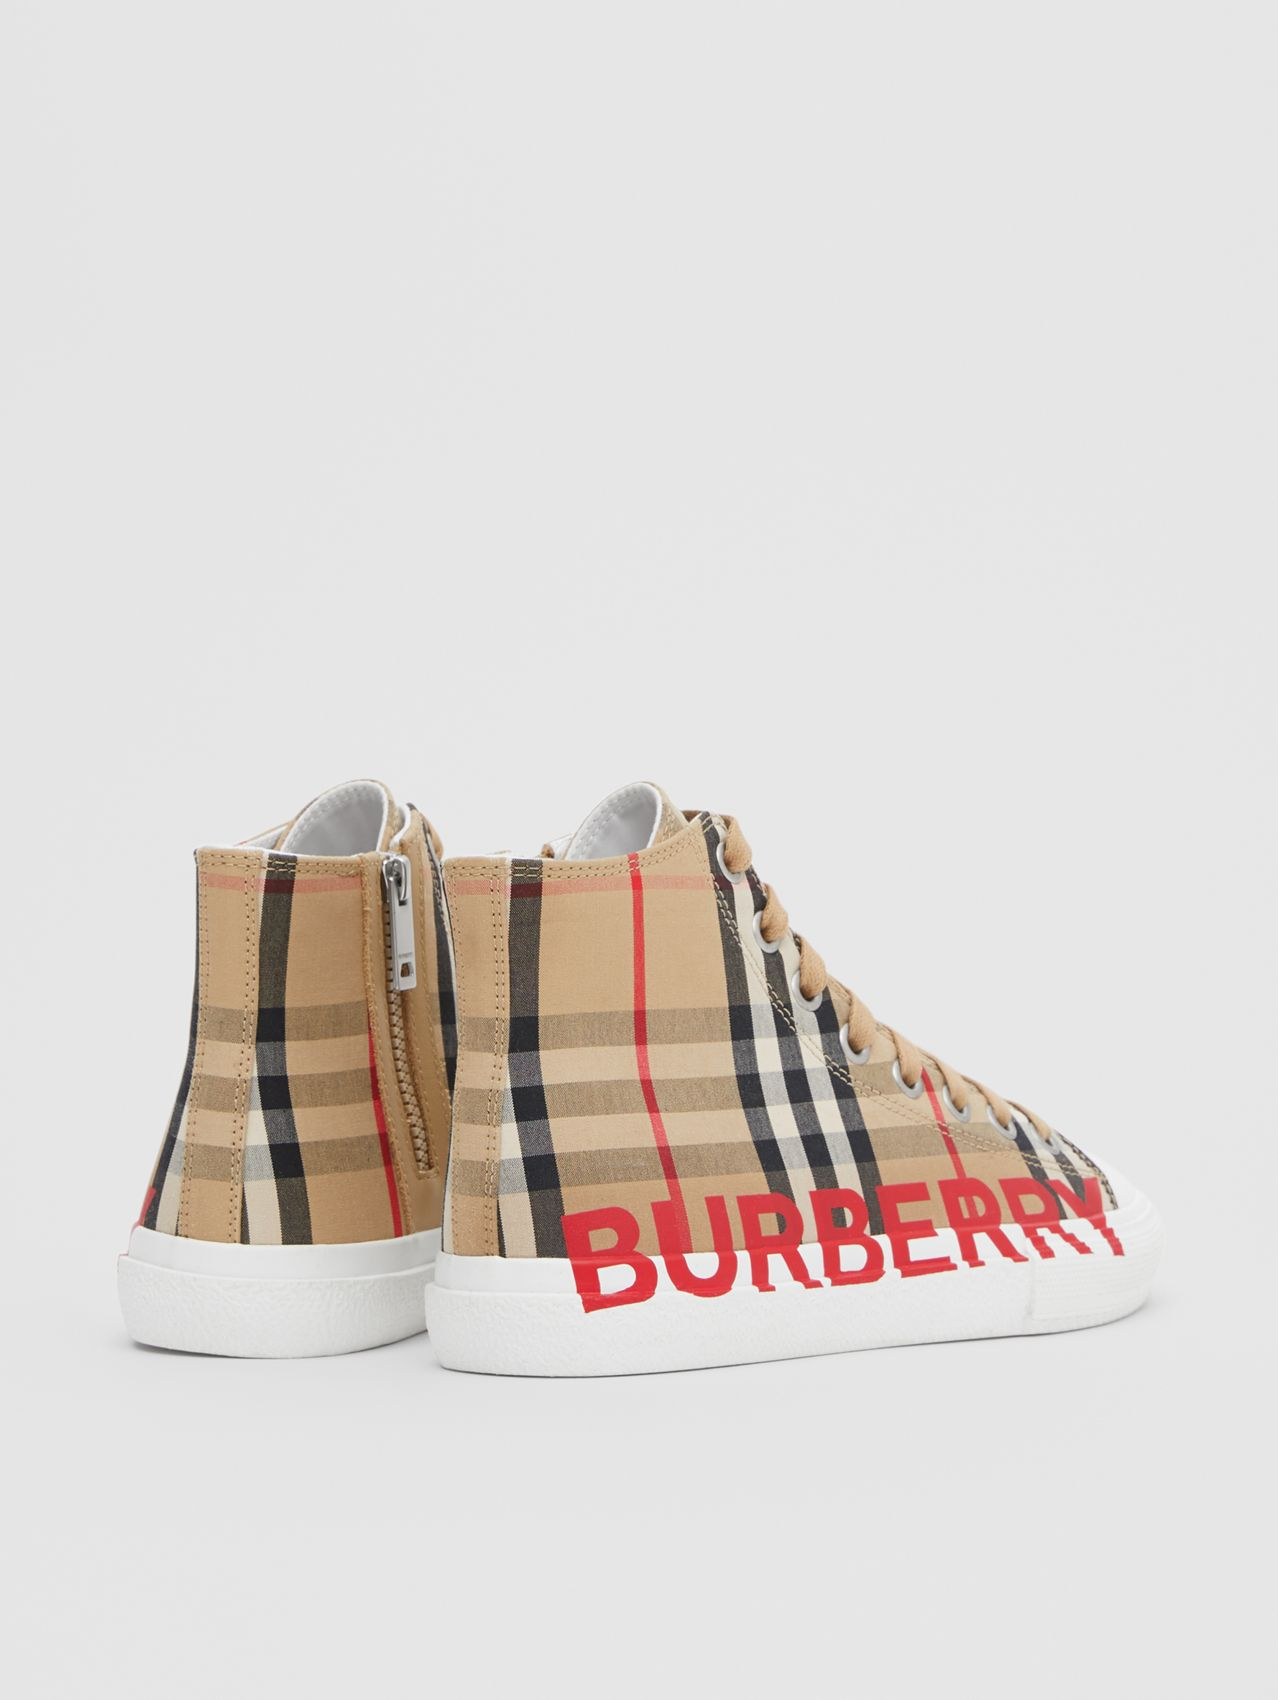 Logo Print Vintage Check High-top Sneakers in Archive Beige